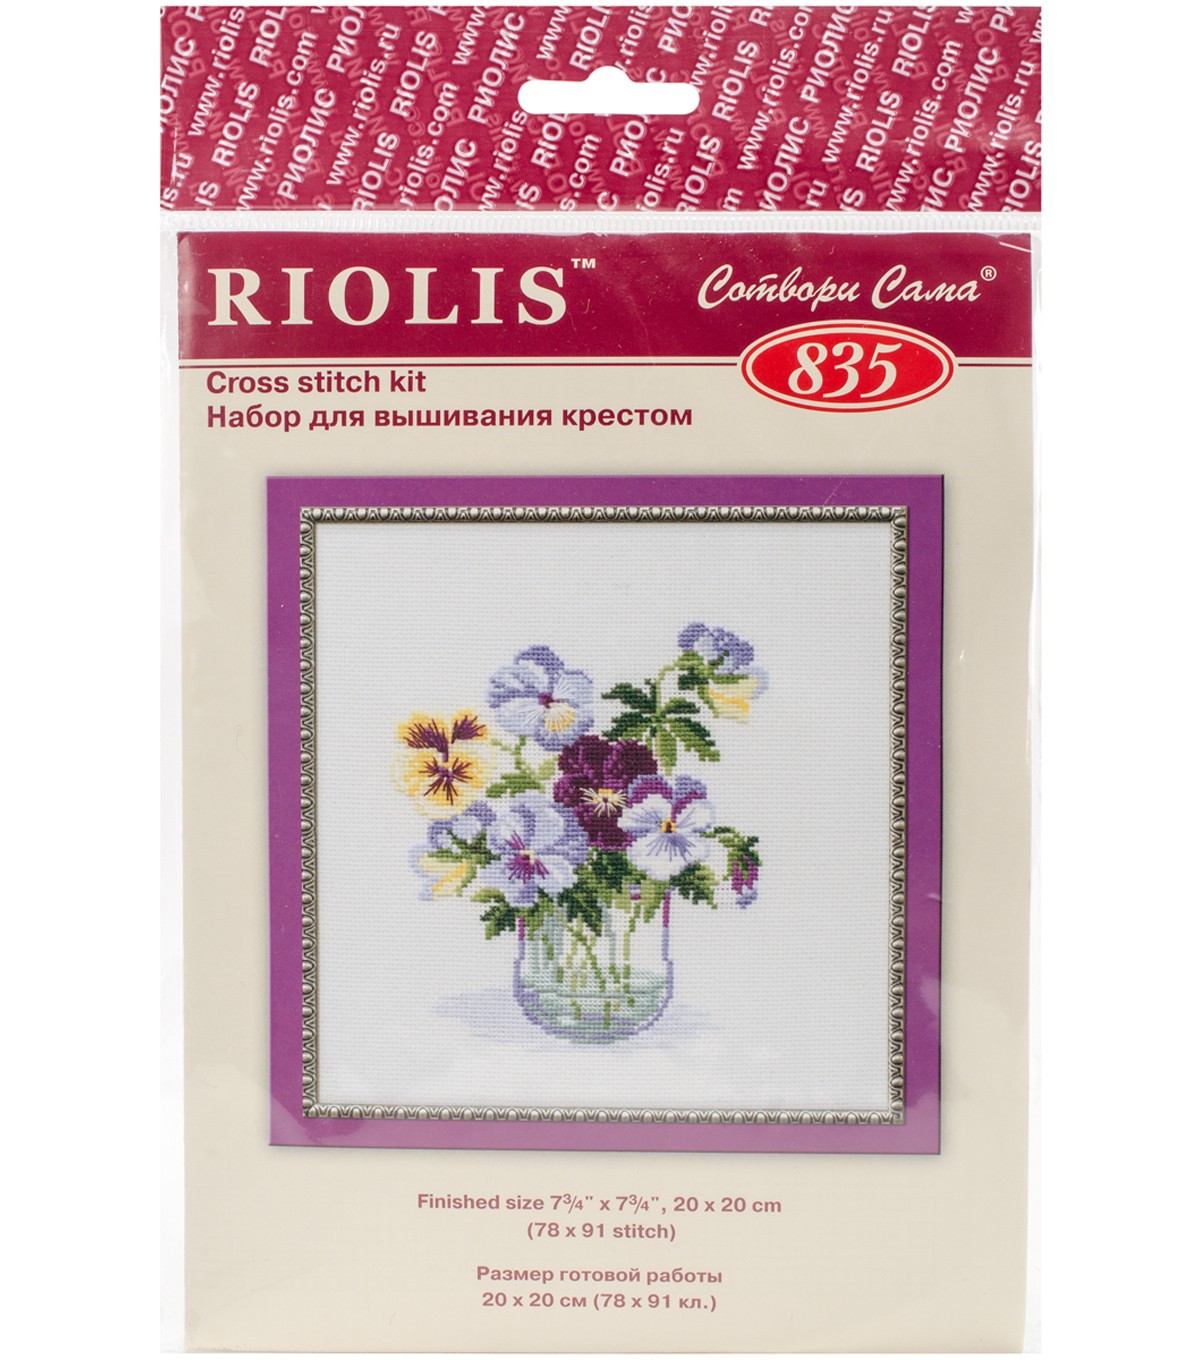 RIOLIS Combopu Cama 7.75\u0027\u0027x7.75\u0027\u0027 Counted Cross Stitch Kit-Pansies